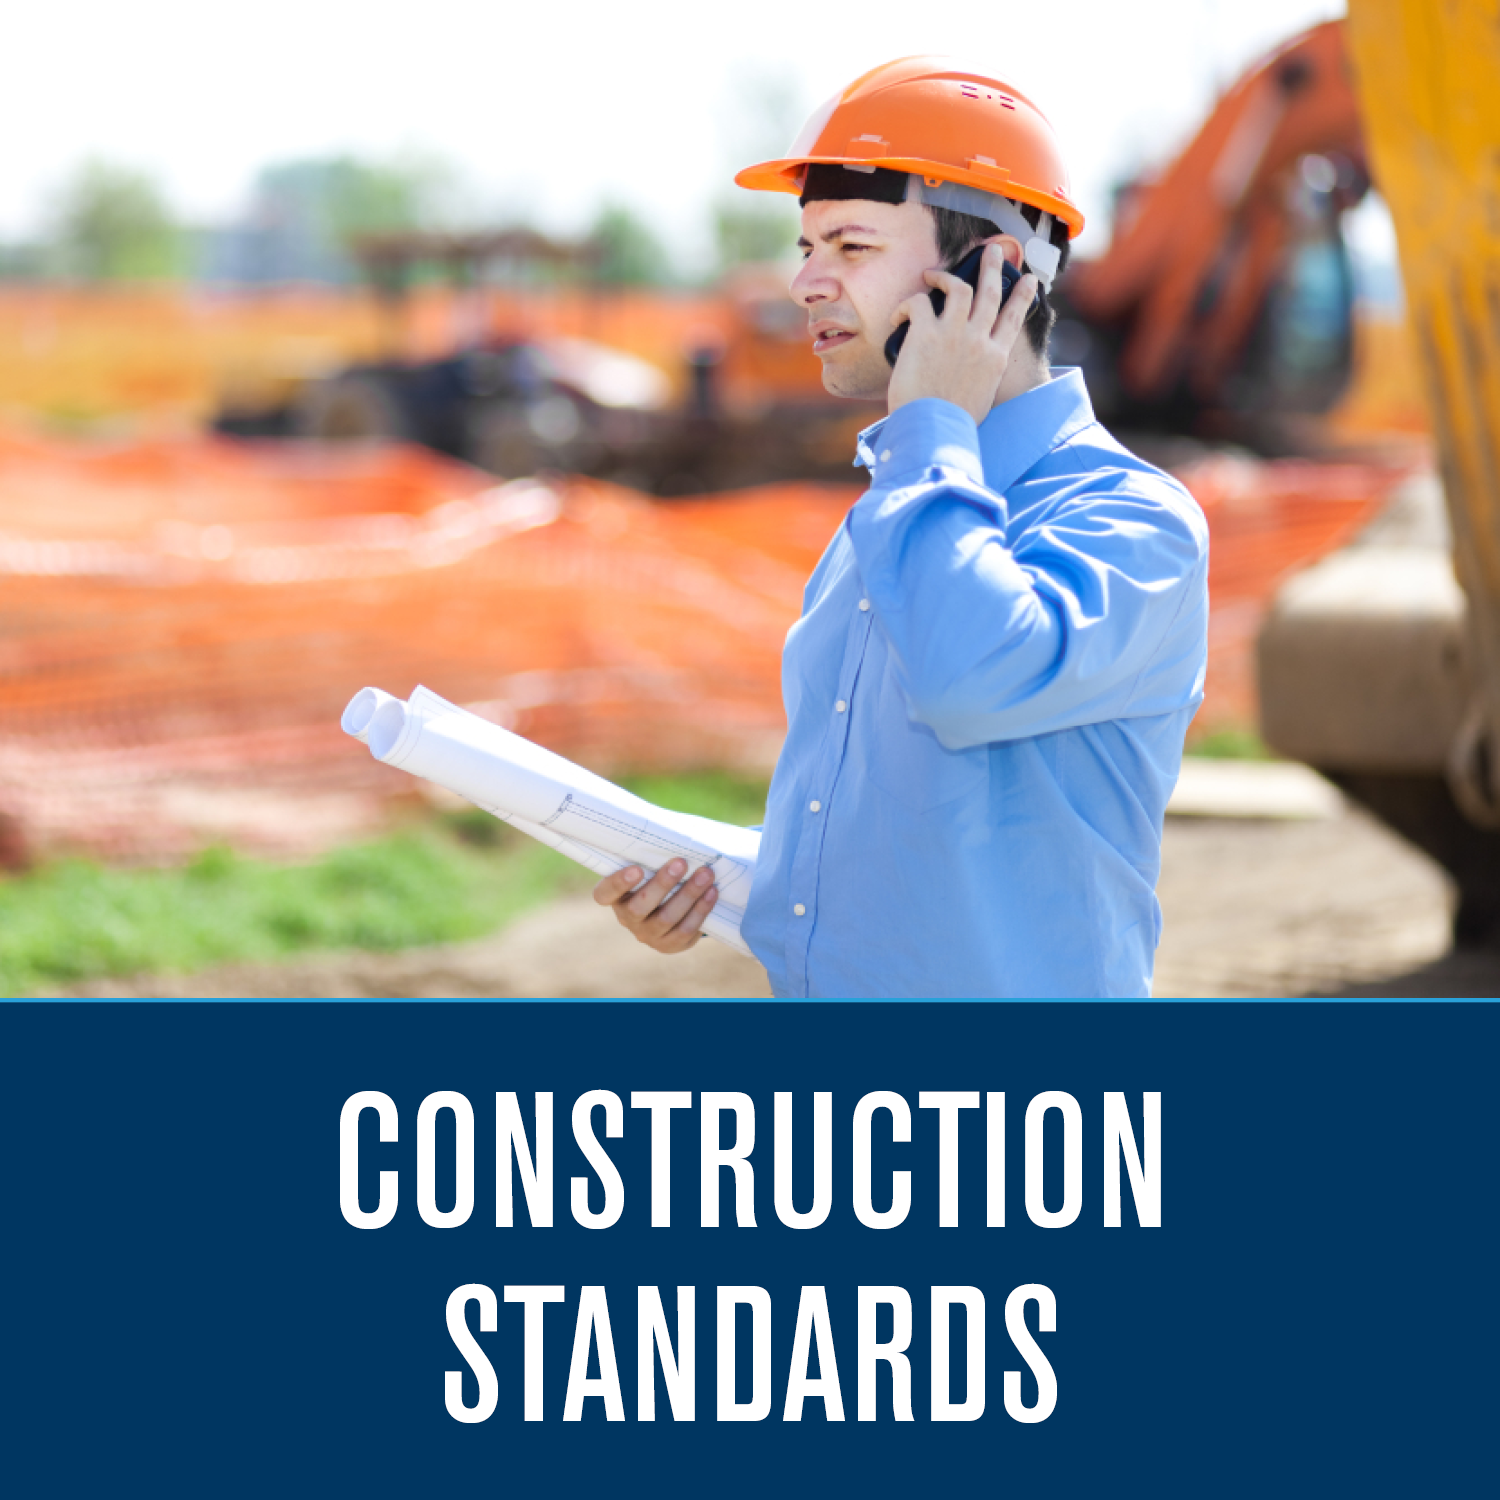 Construction Standards